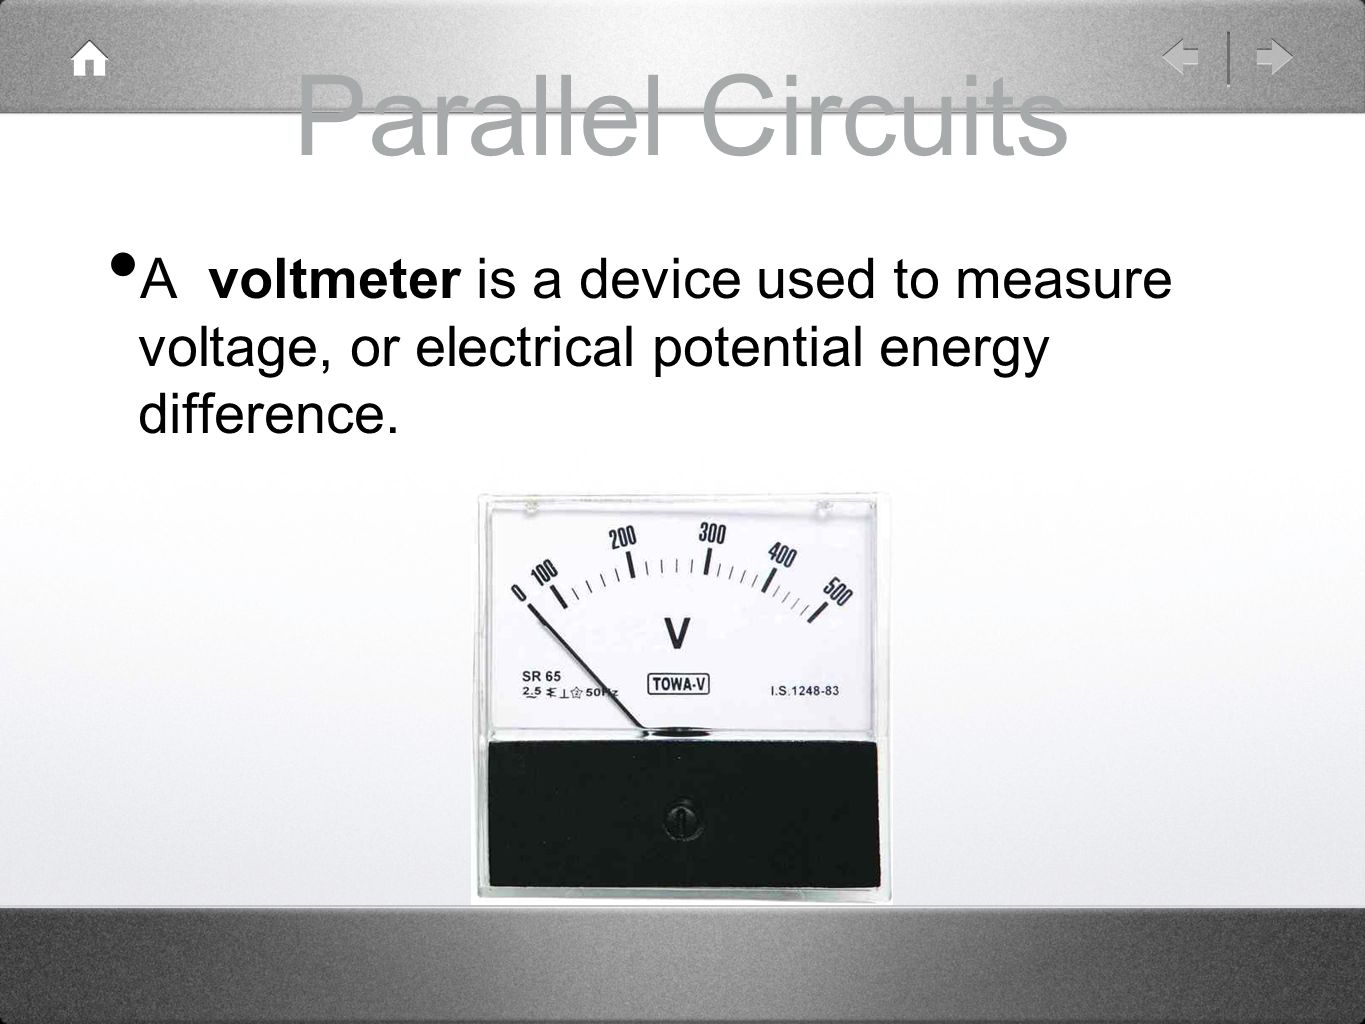 Parallel Circuits A voltmeter is a device used to measure voltage, or electrical potential energy difference.